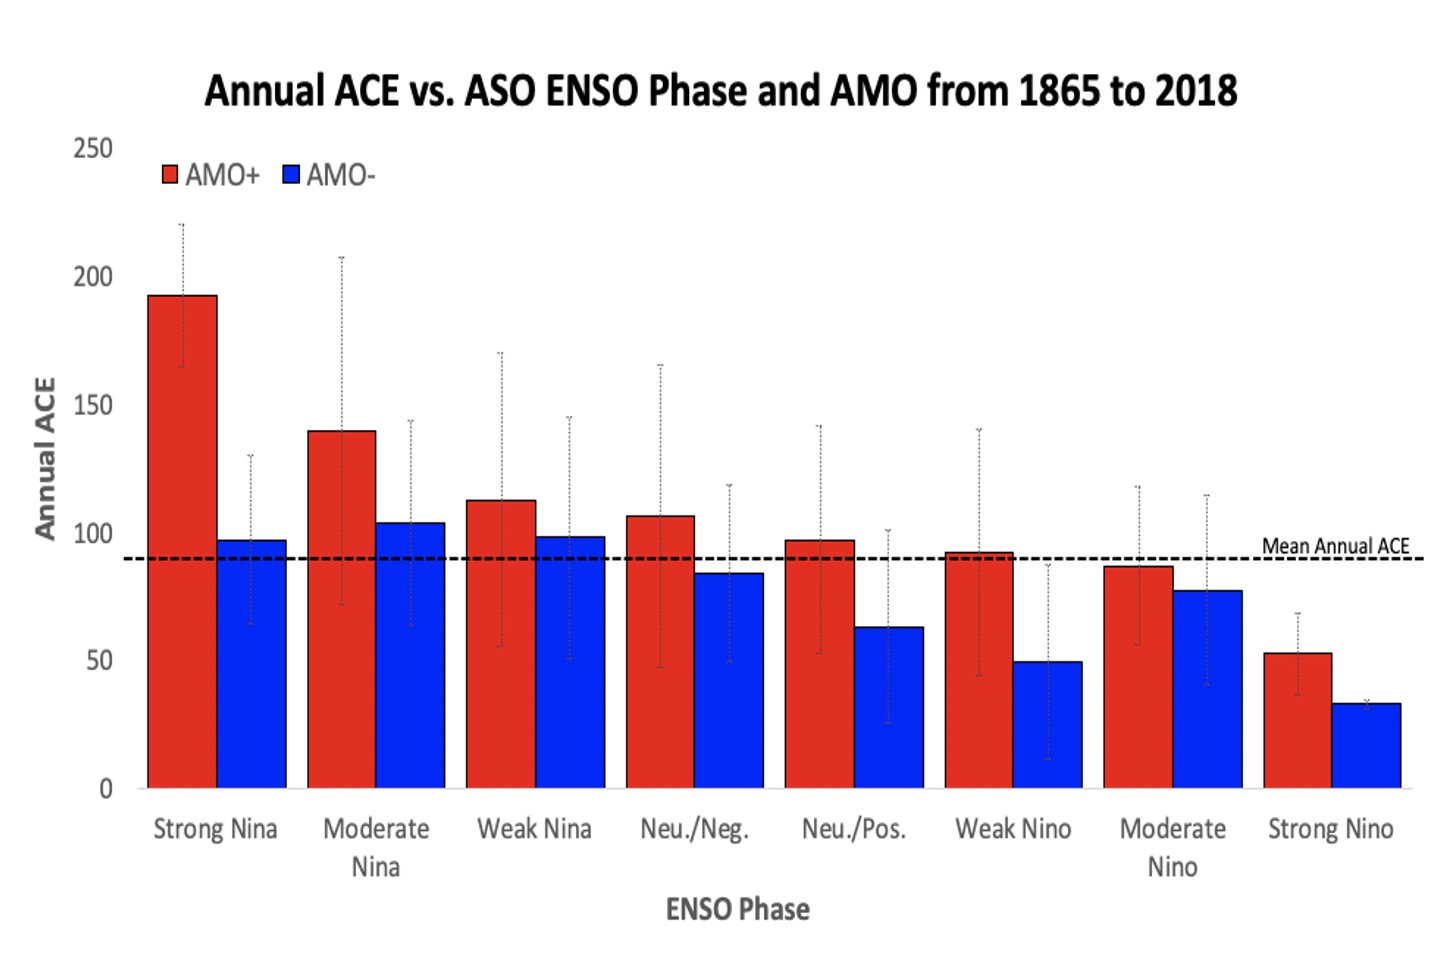 ENSO and AMO patterns